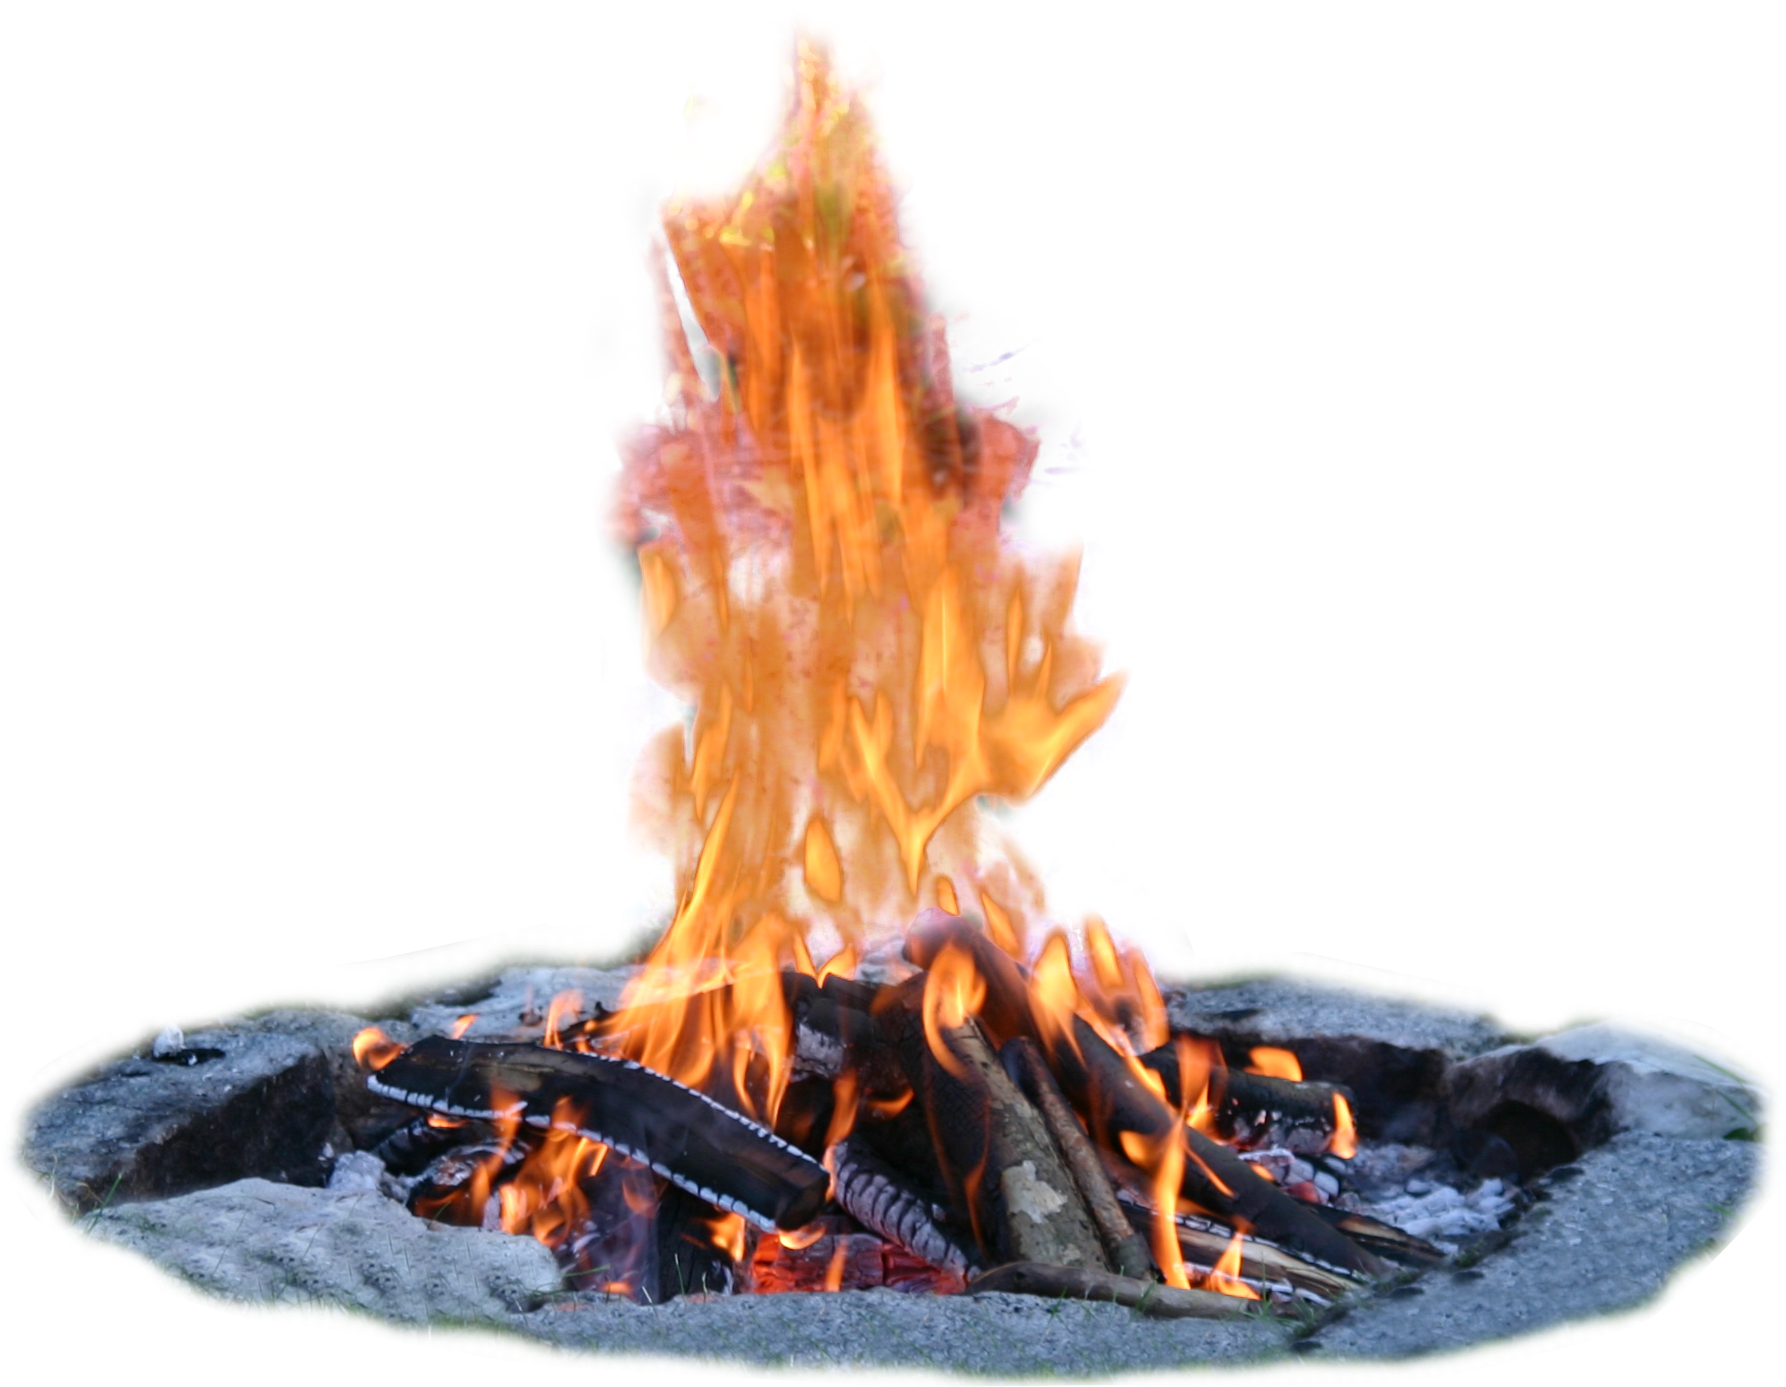 HD Campfire Png Transparent Image.